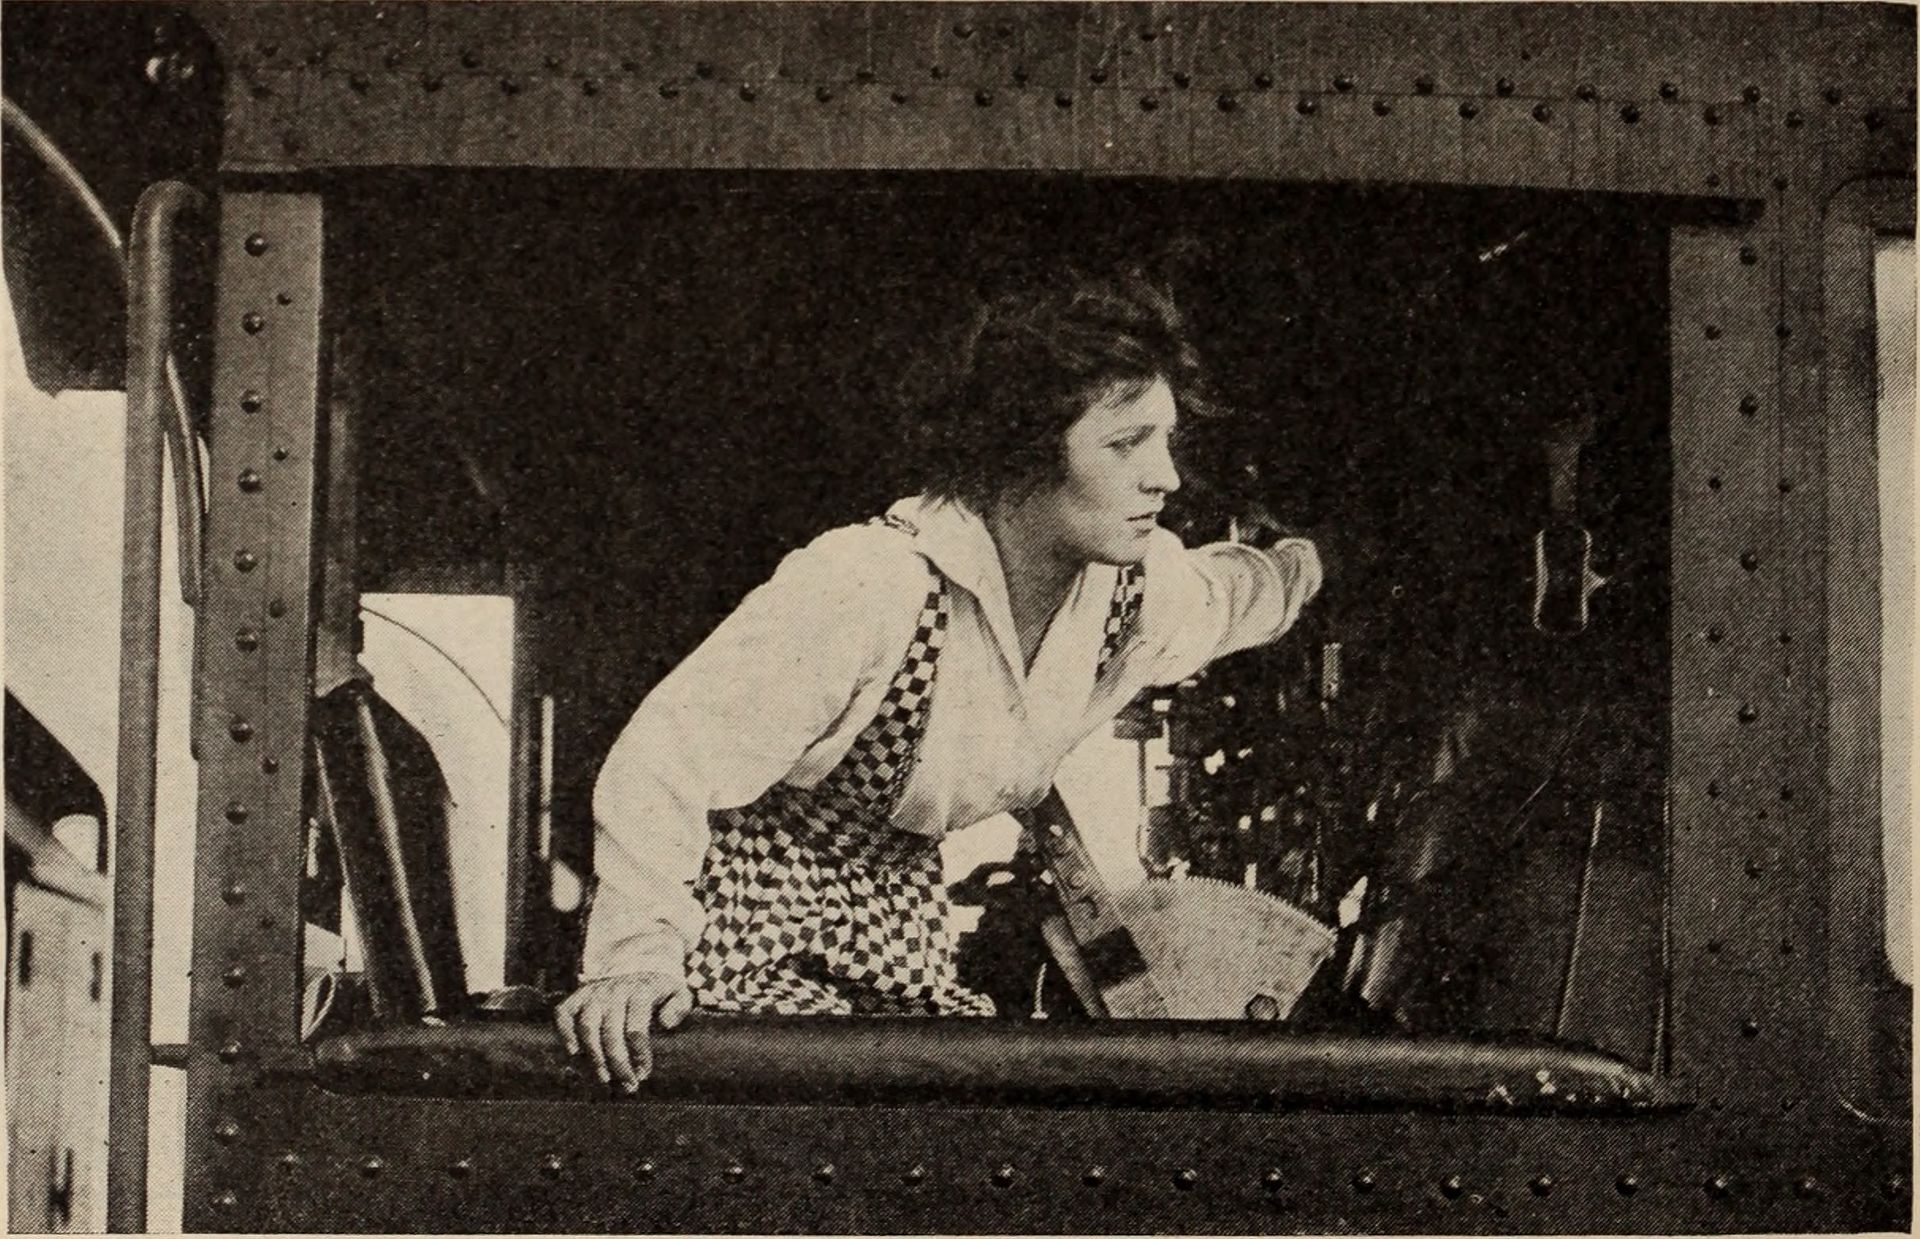 Nitrate, but not forgotten: The pioneering women of early cinema